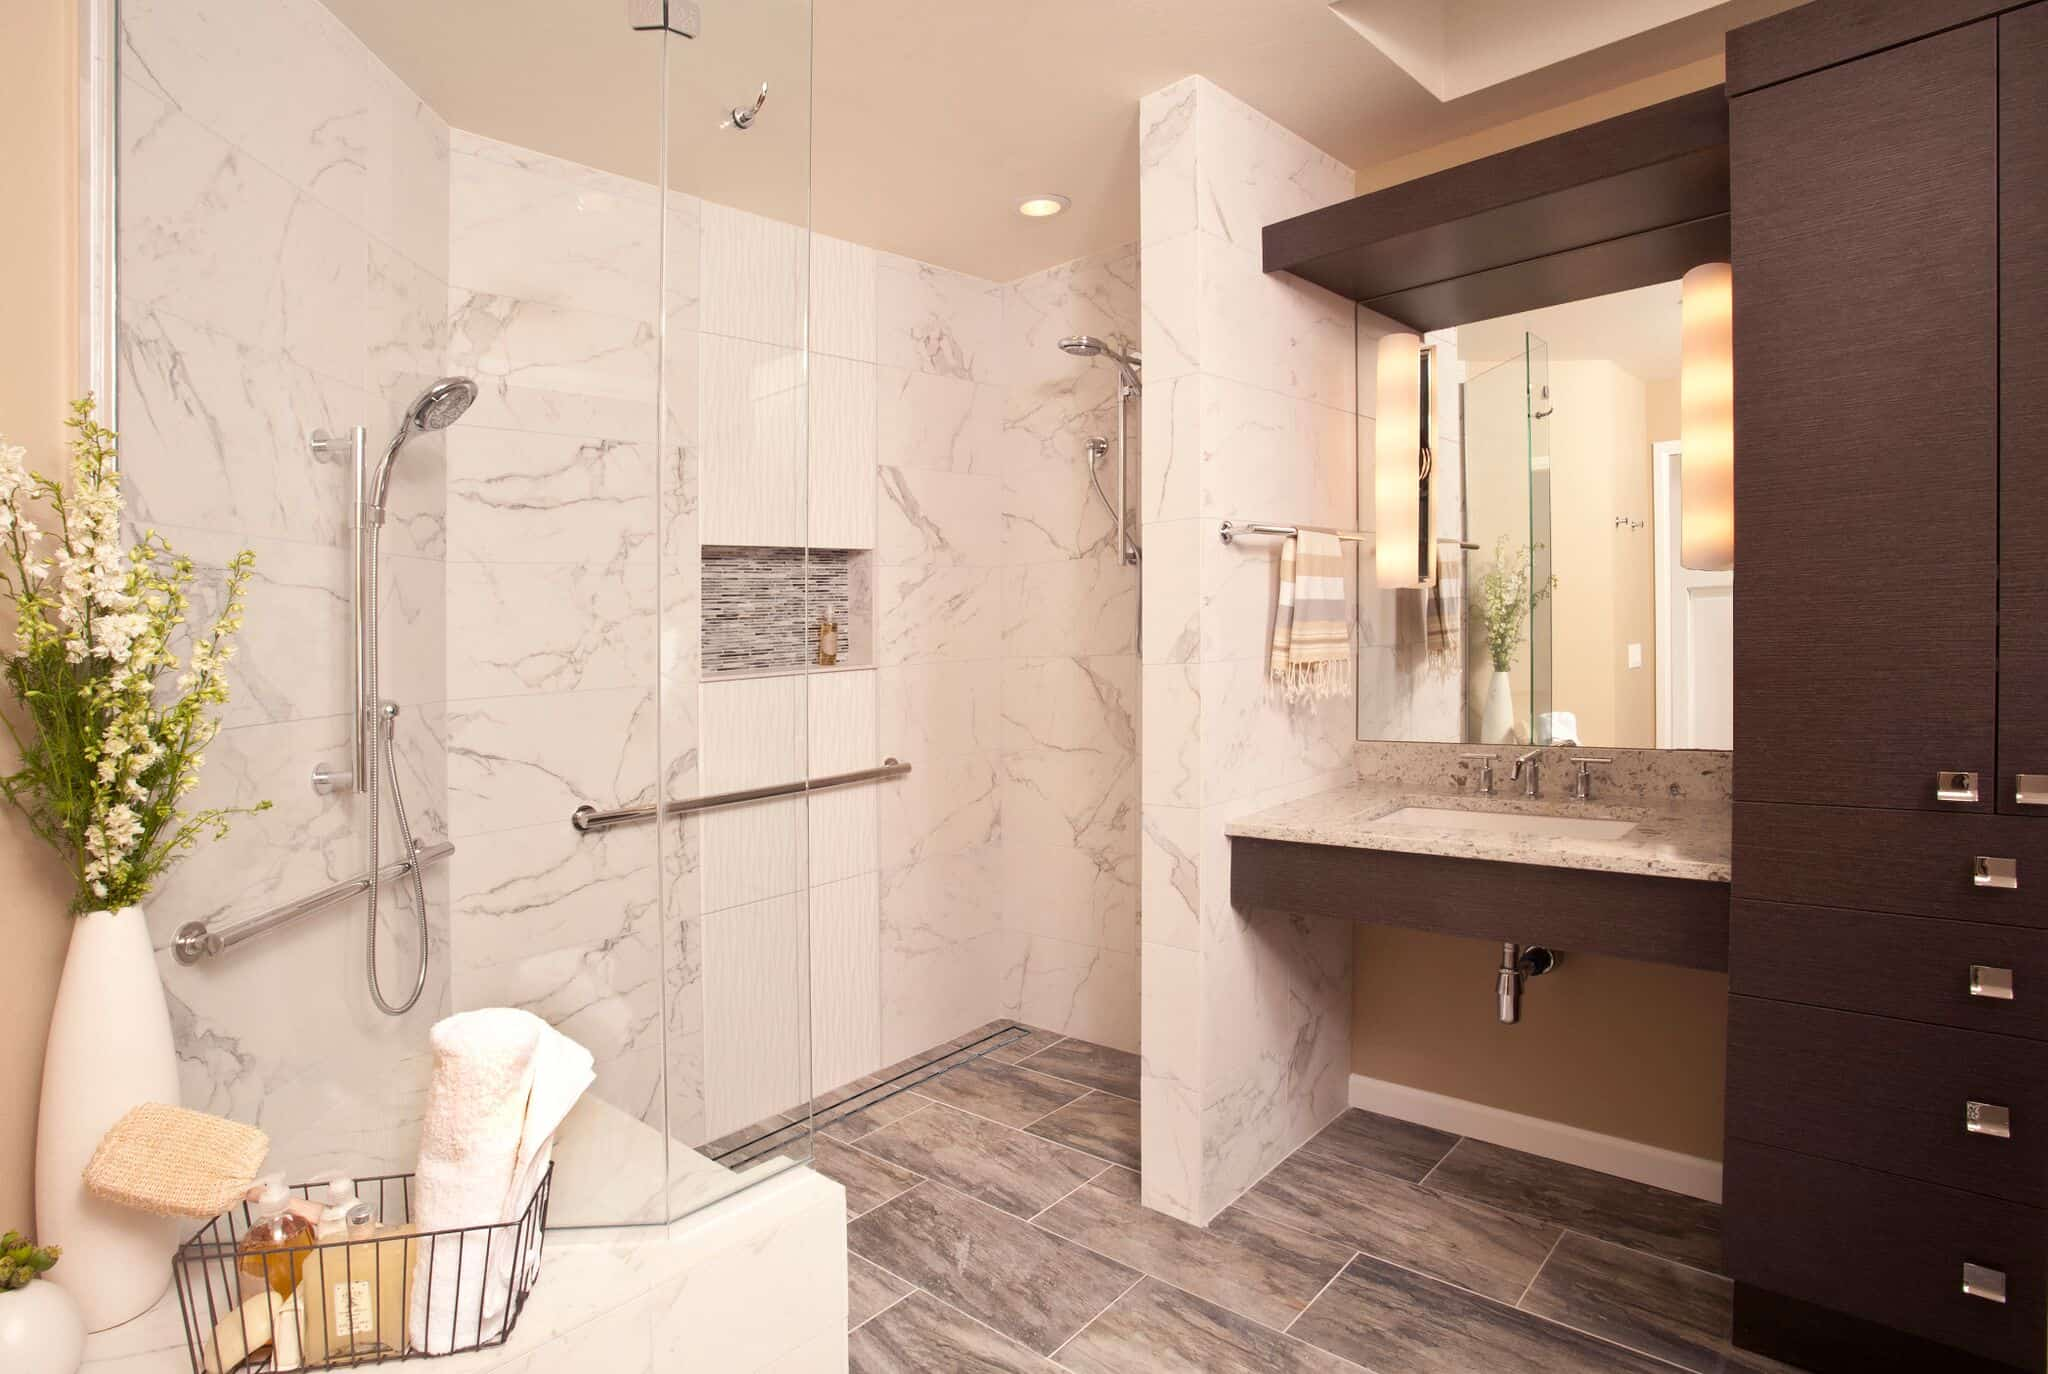 Updated bathroom remodels are just part of Neil Kelly's Service